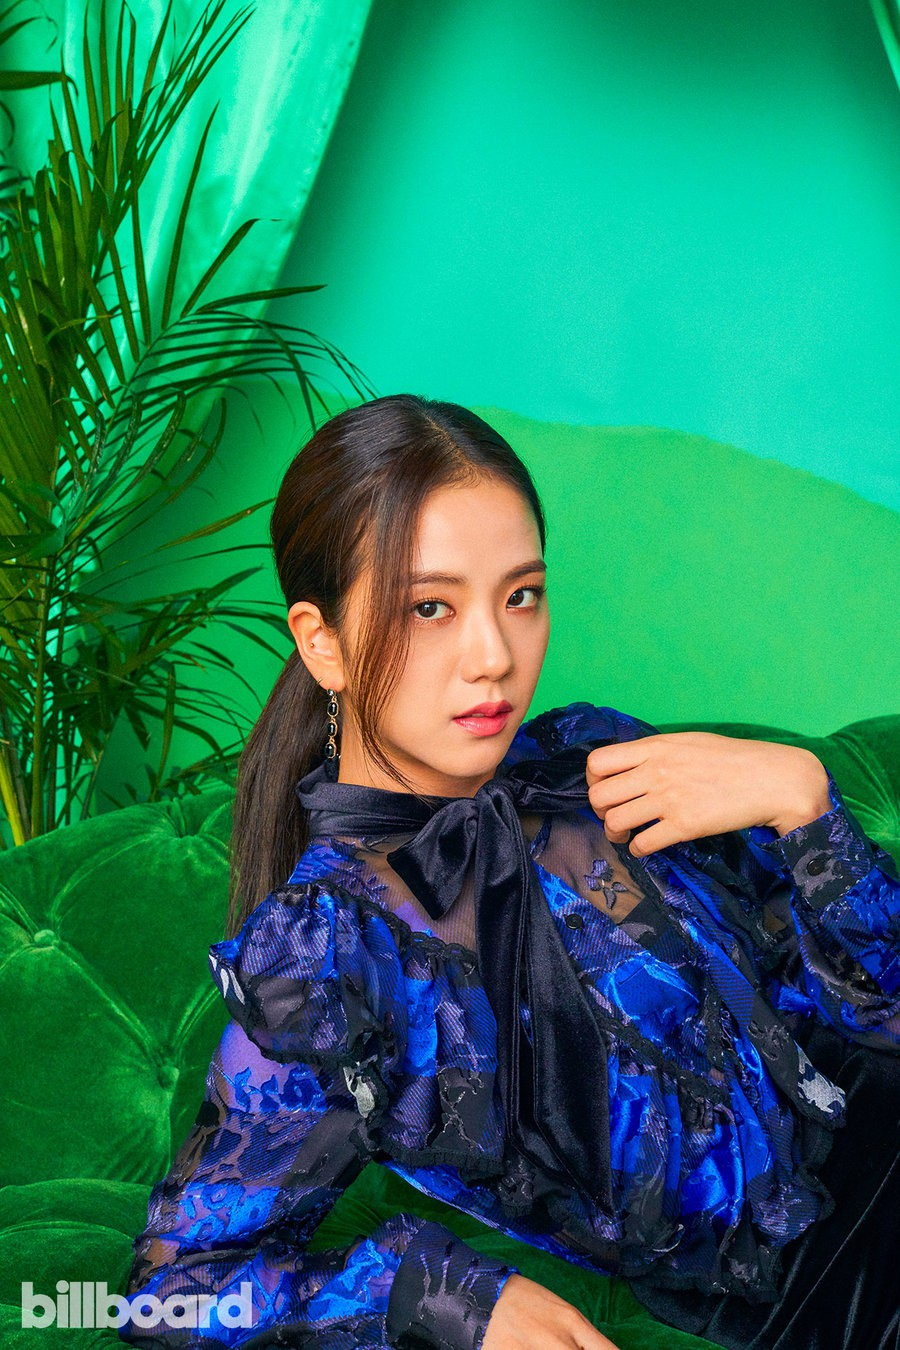 Black Pink was the first female Kpop girl to cover Billboard magazine's cover: beauty and charisma peak here! - Photo 10.